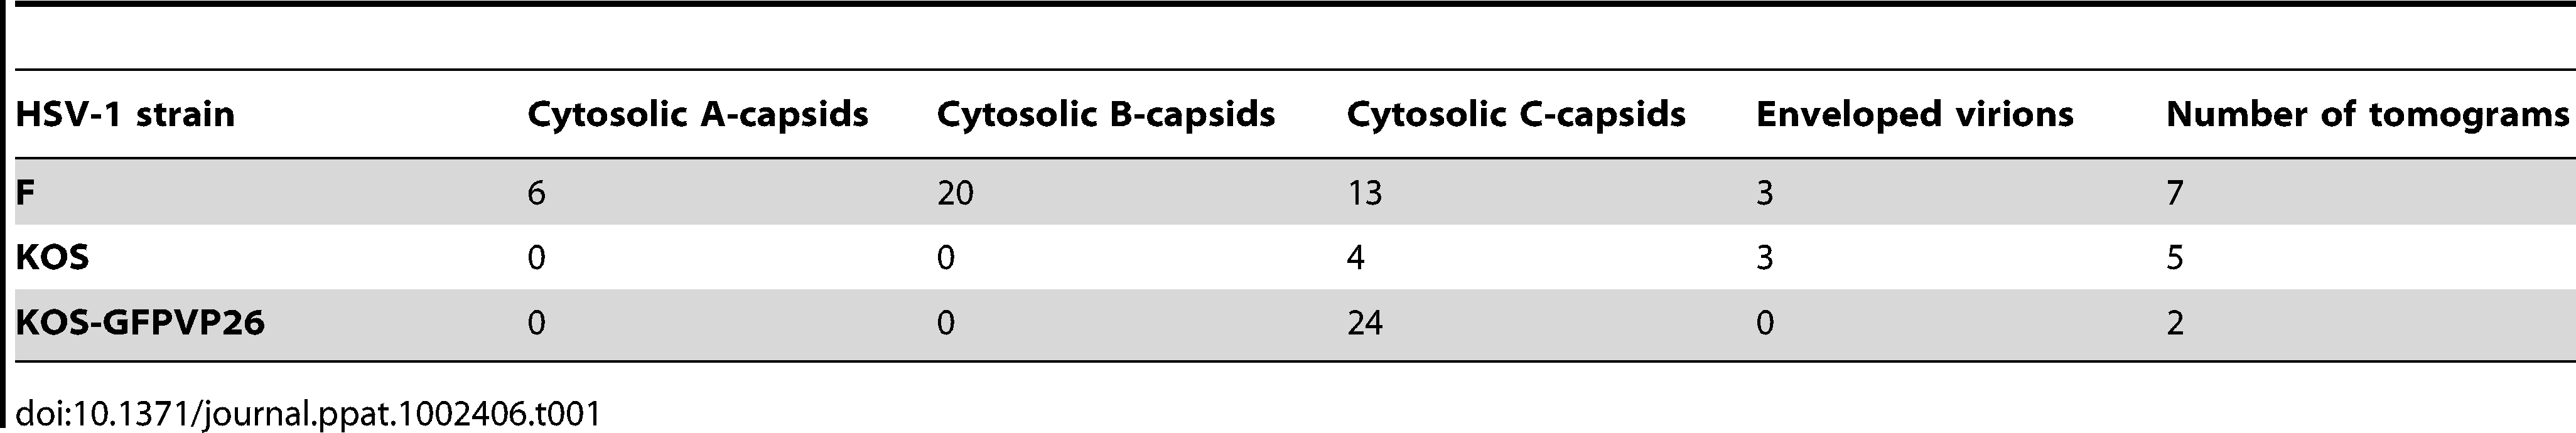 Frequency of viral particle types found in middle regions of axons for the HSV1 strains used for infection.